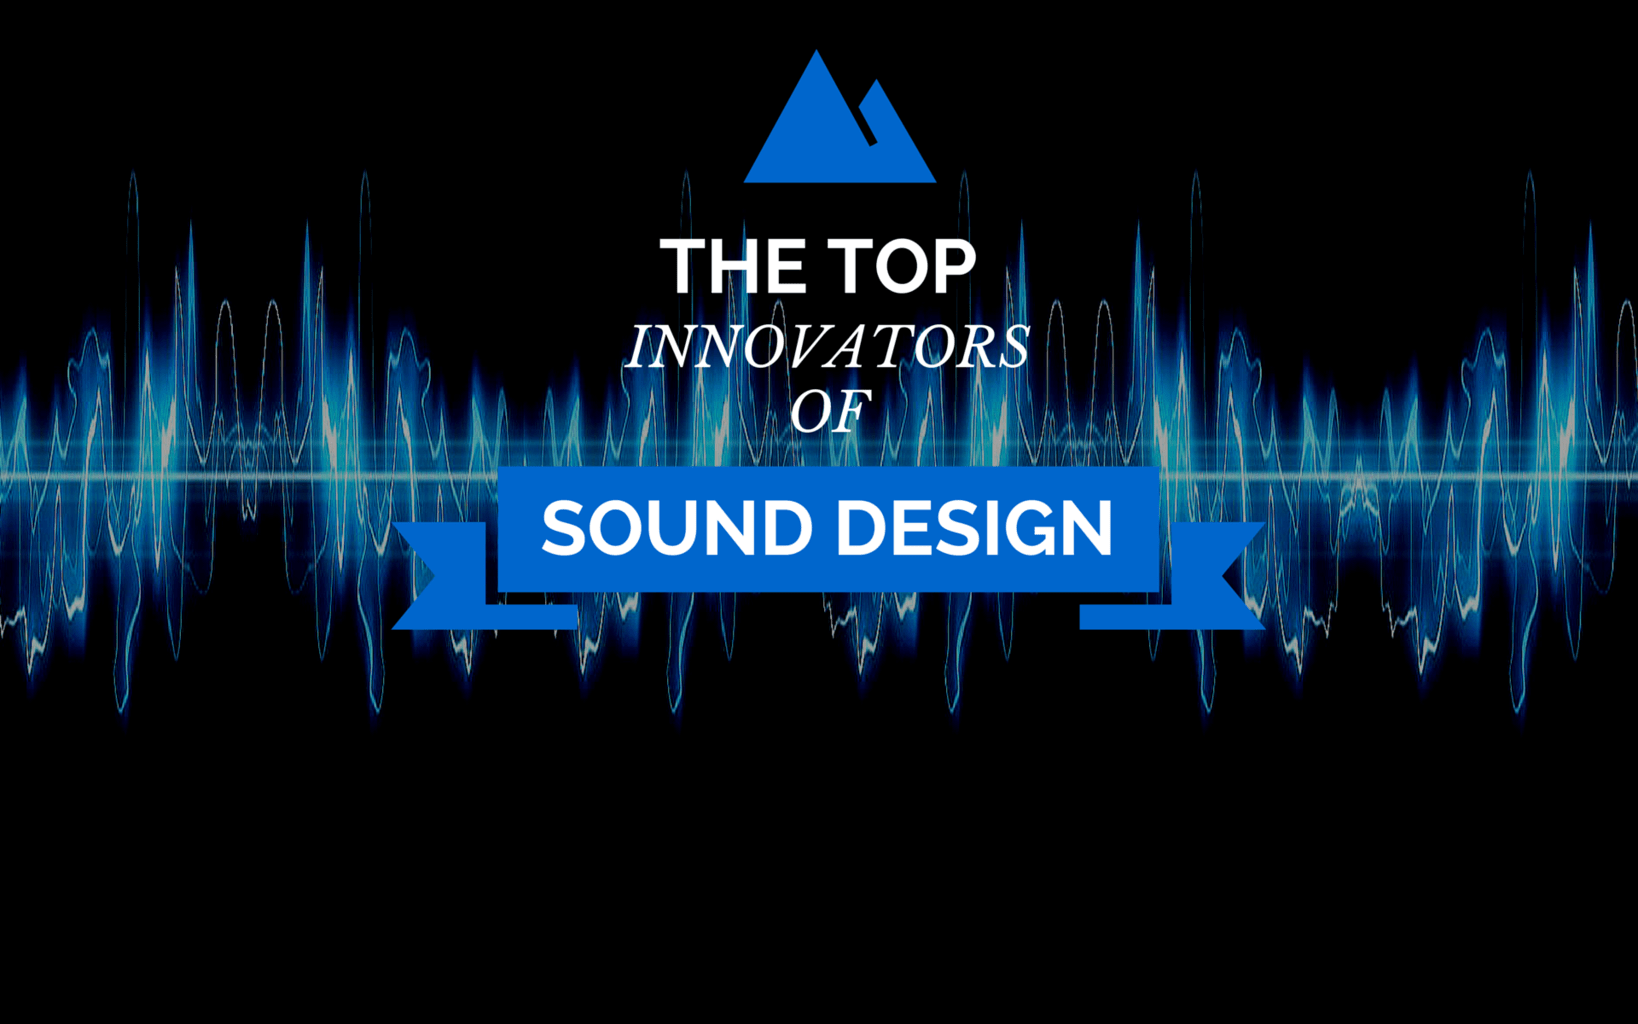 The Top Innovators of Sound Design